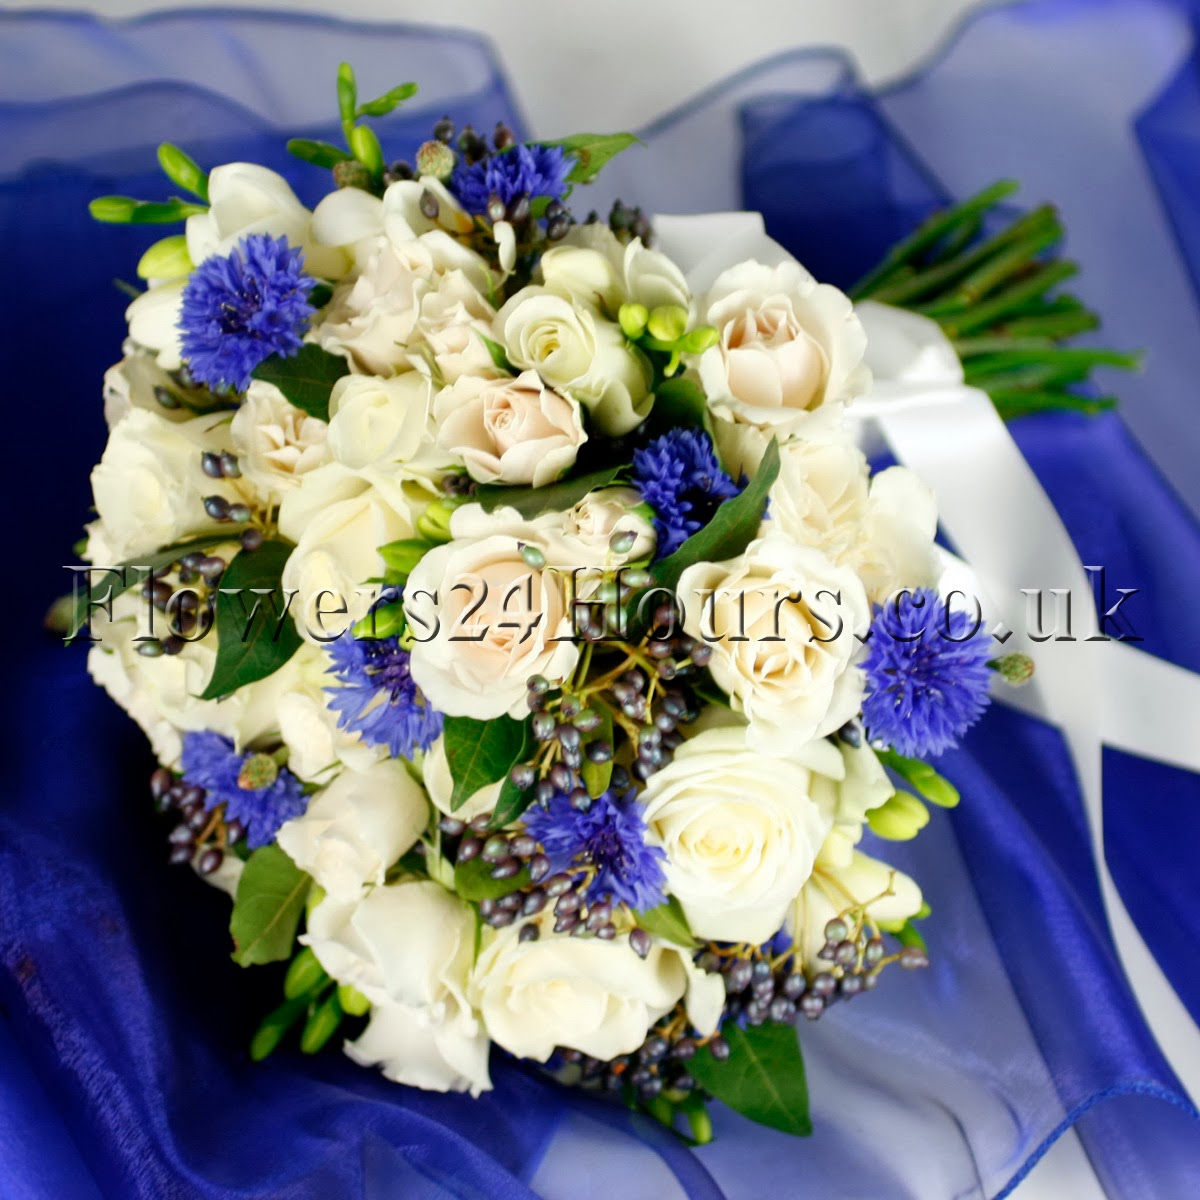 Stylish Flowers For Springsummer 2014 By London Florists At